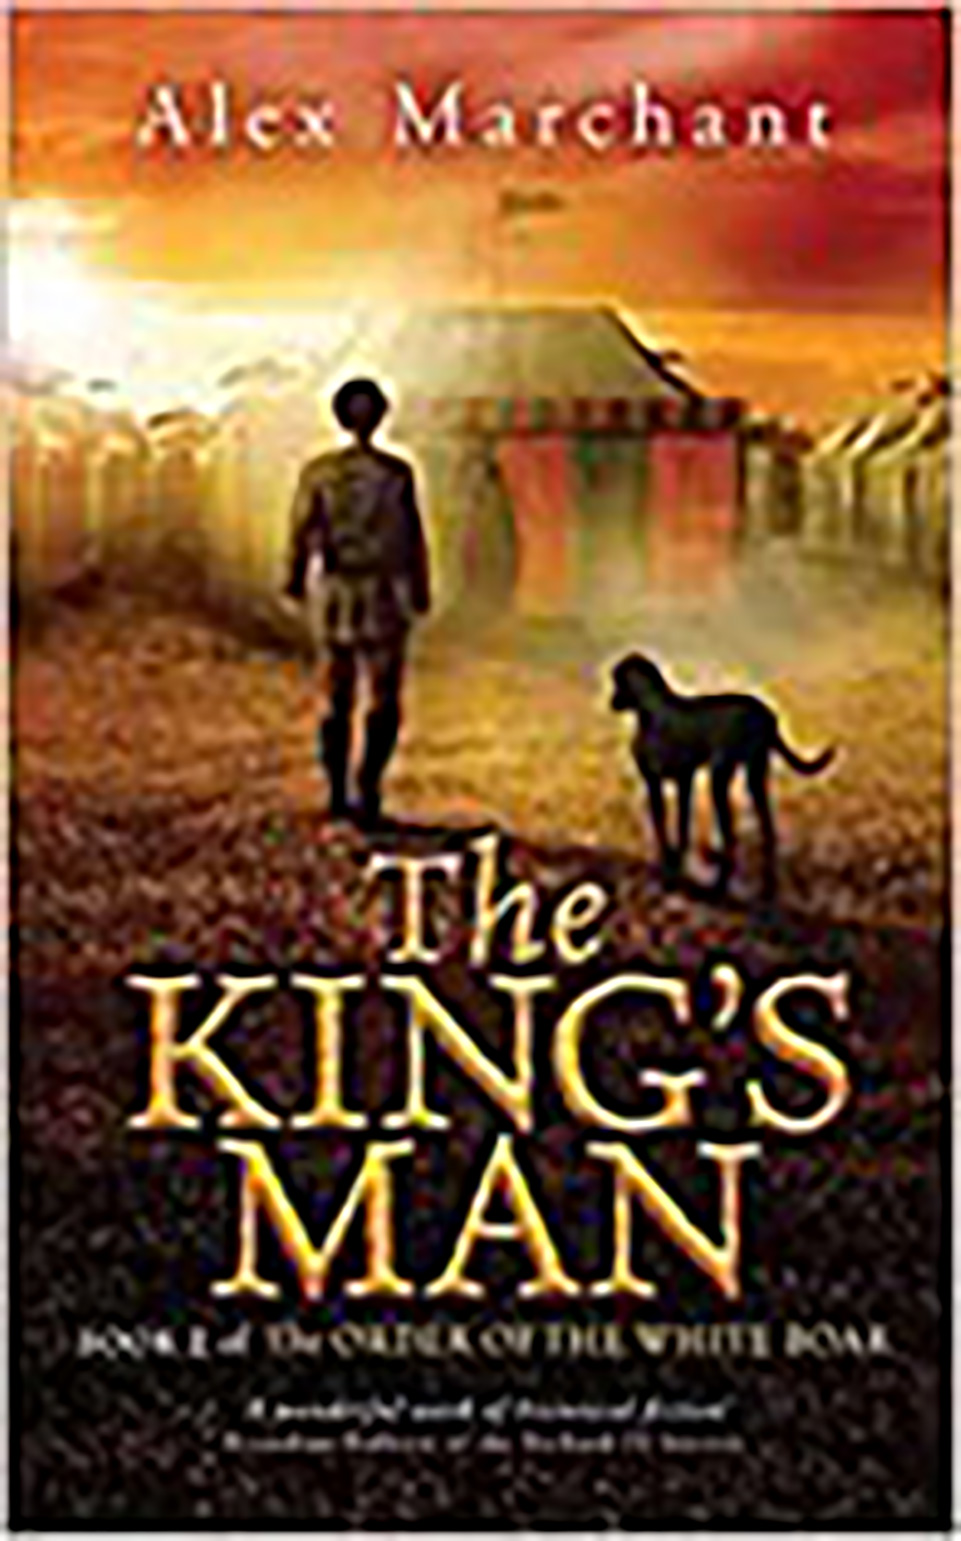 front cover of a book: The King's Man by Alex Marchant